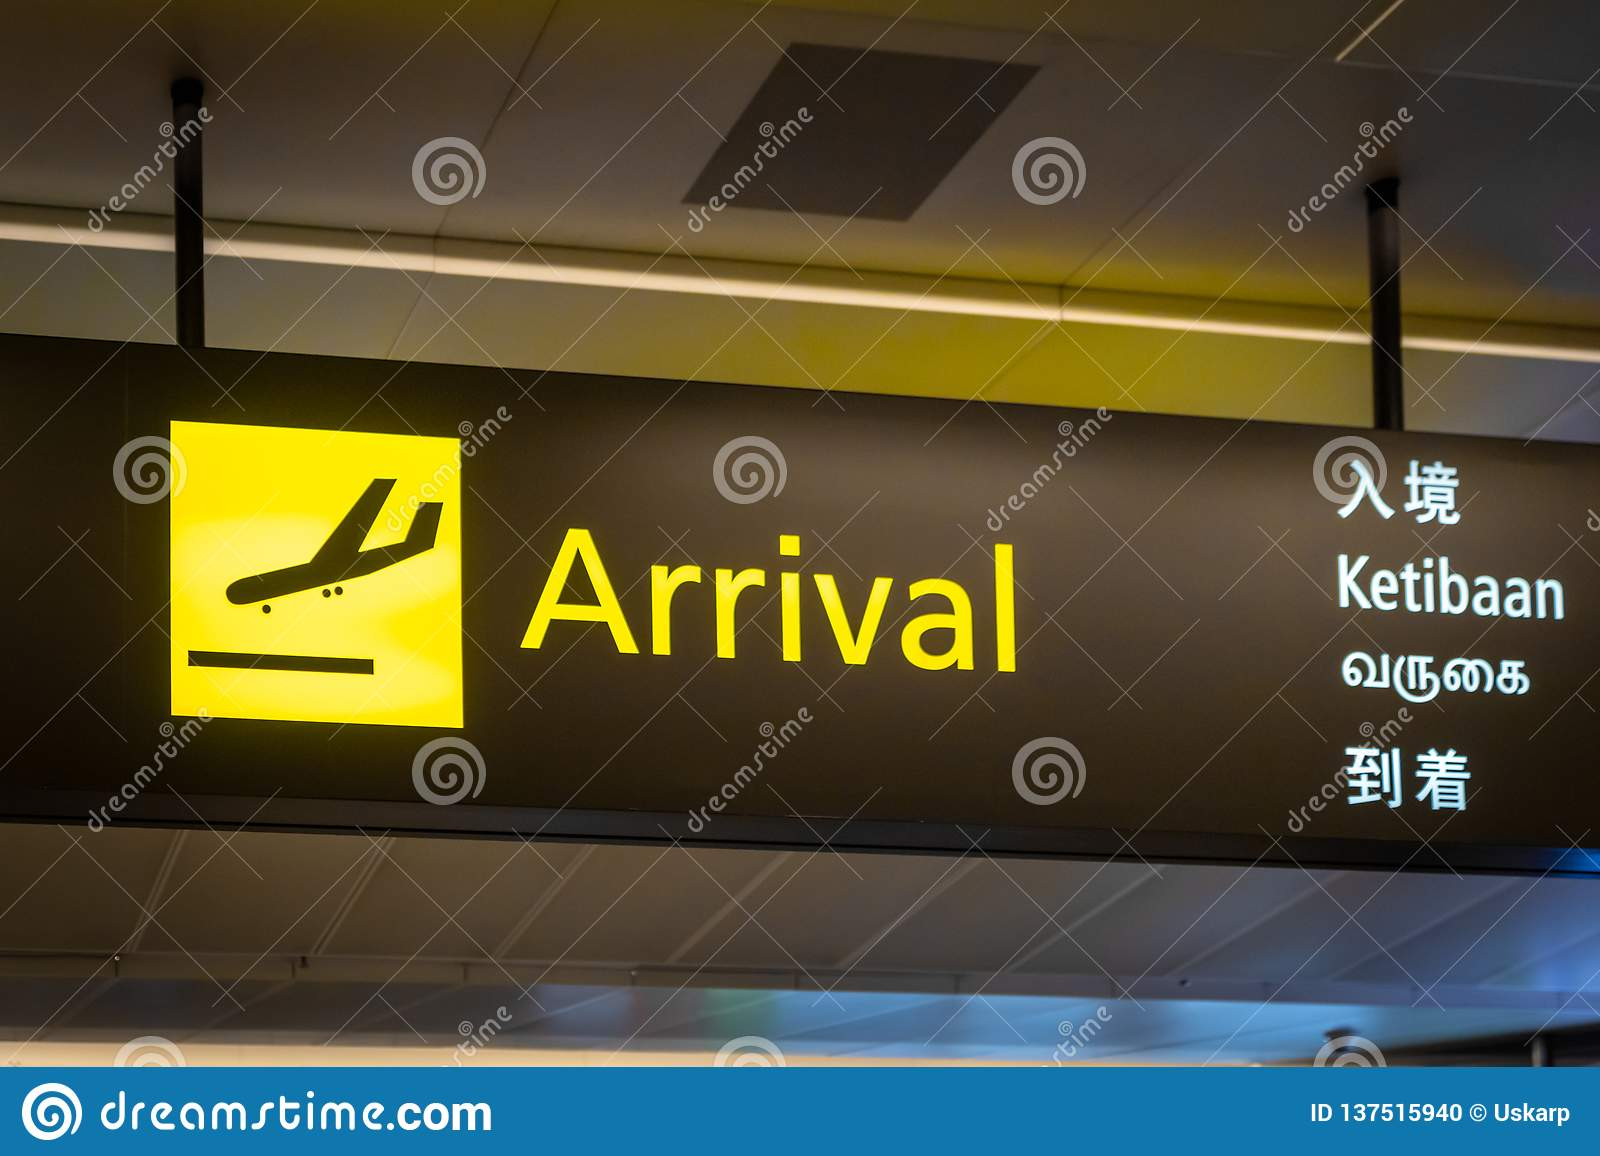 Airport Arrival Sign International Flight Arrival Information Sign At Airport Stock Photo Image Of Departure Check 137515940